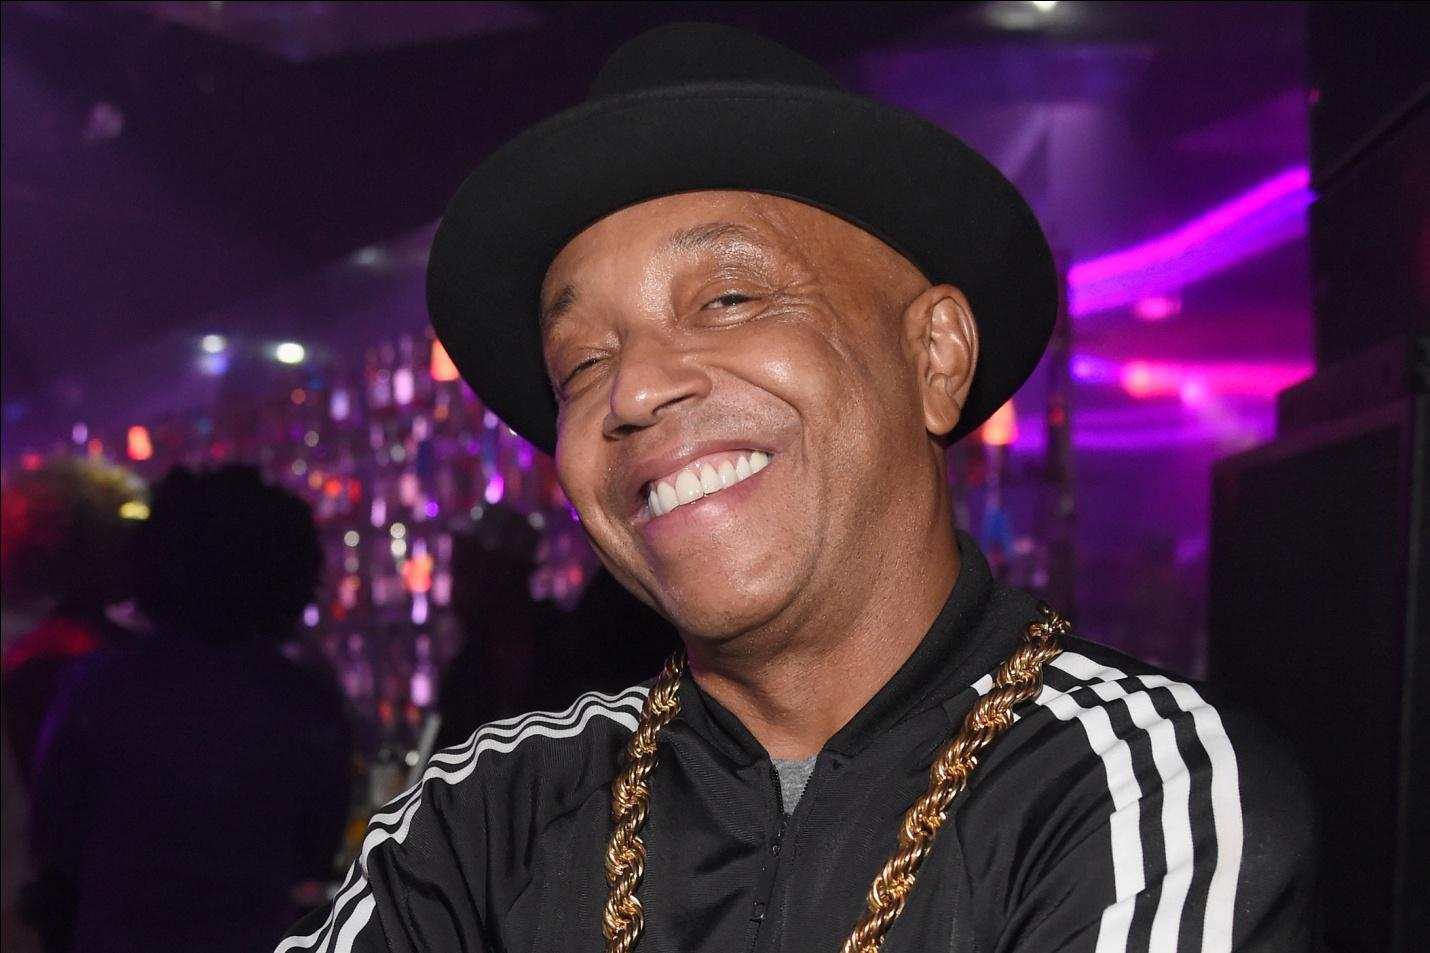 Russell Simmons attends Casamigos Halloween Party on October 27, 2017 in Los Angeles, California.